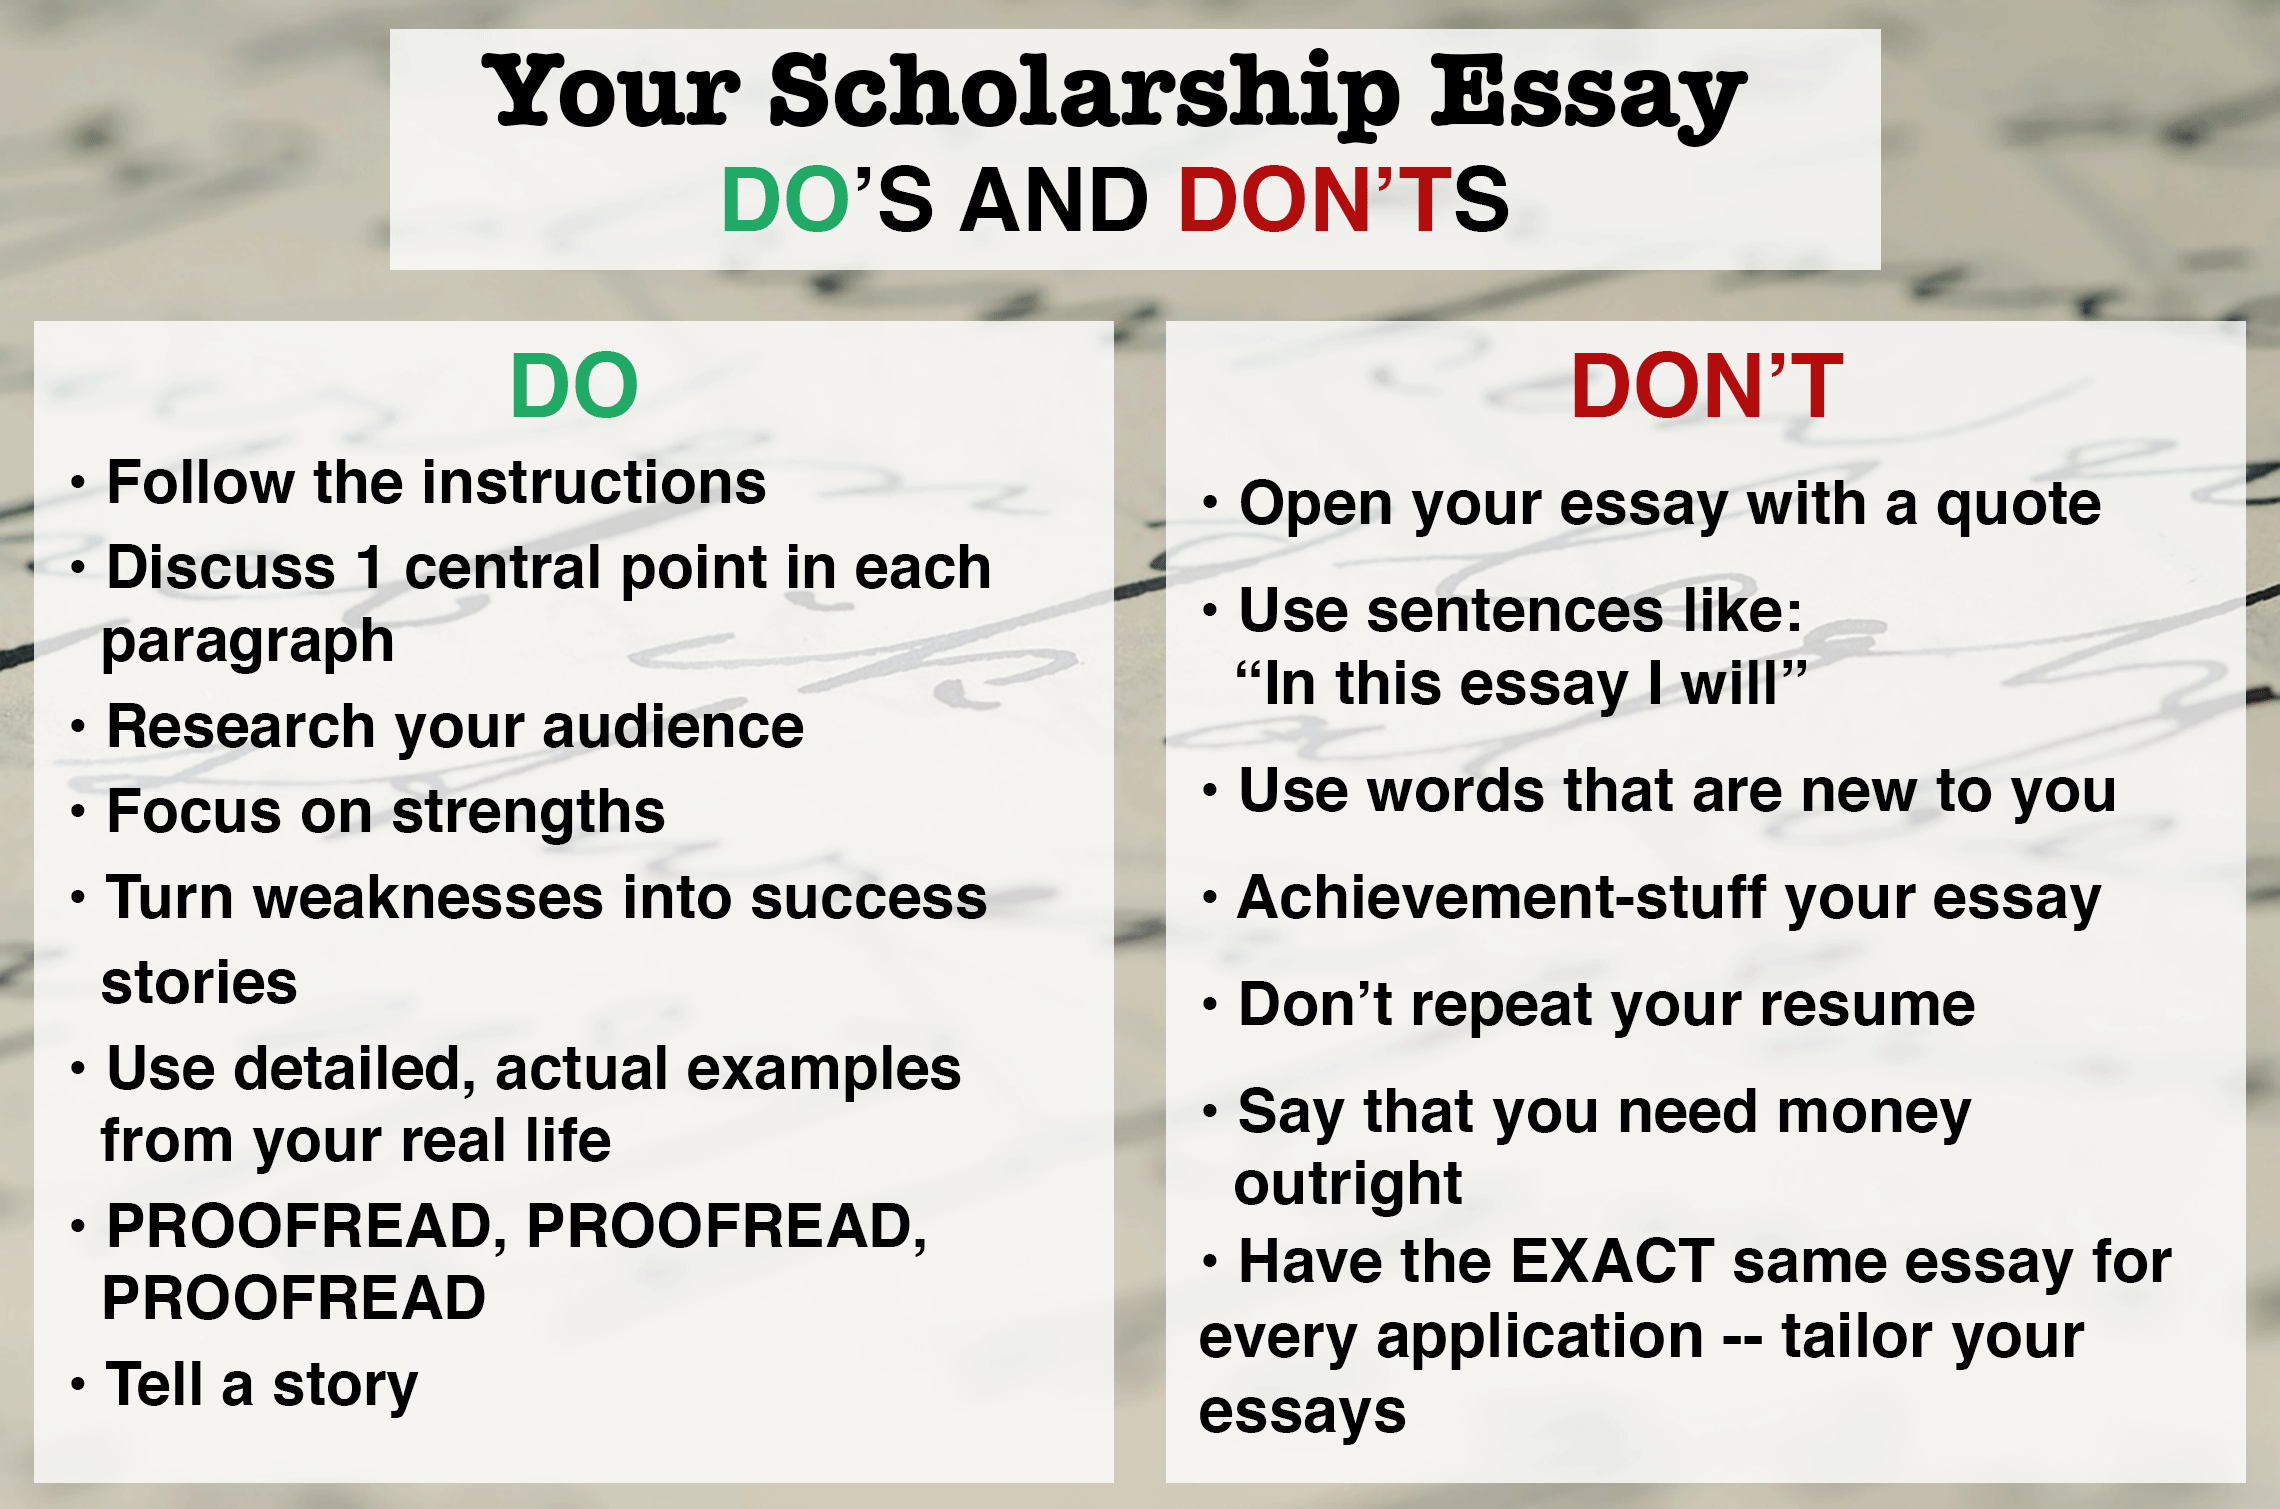 starting a scholarship essay Continue reading 7 steps to writing a winning scholarship essay get started if you're on the hunt for scholarships to start college global english editing.